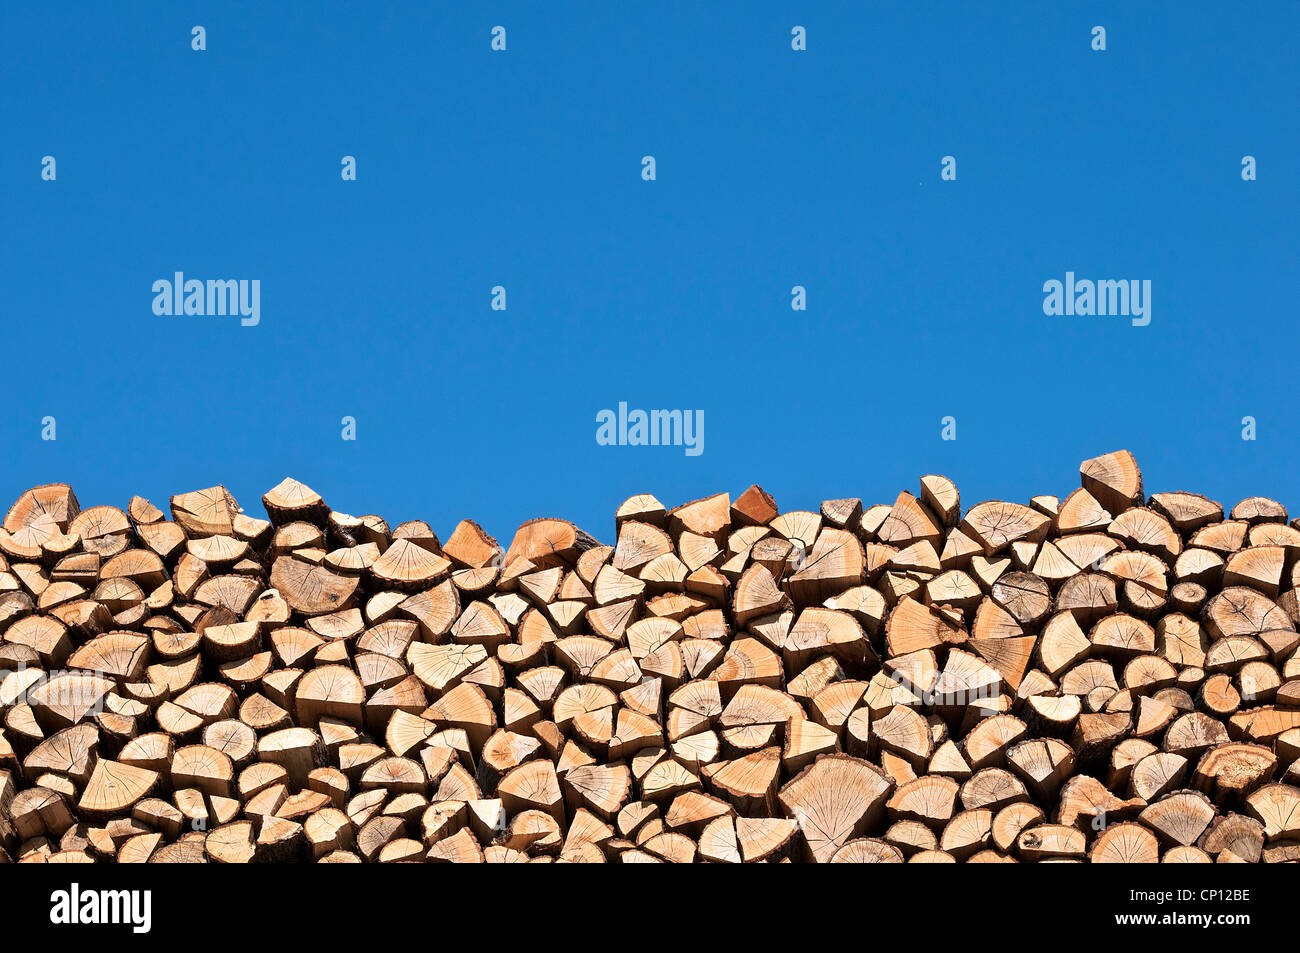 Stack of wood - Stock Image